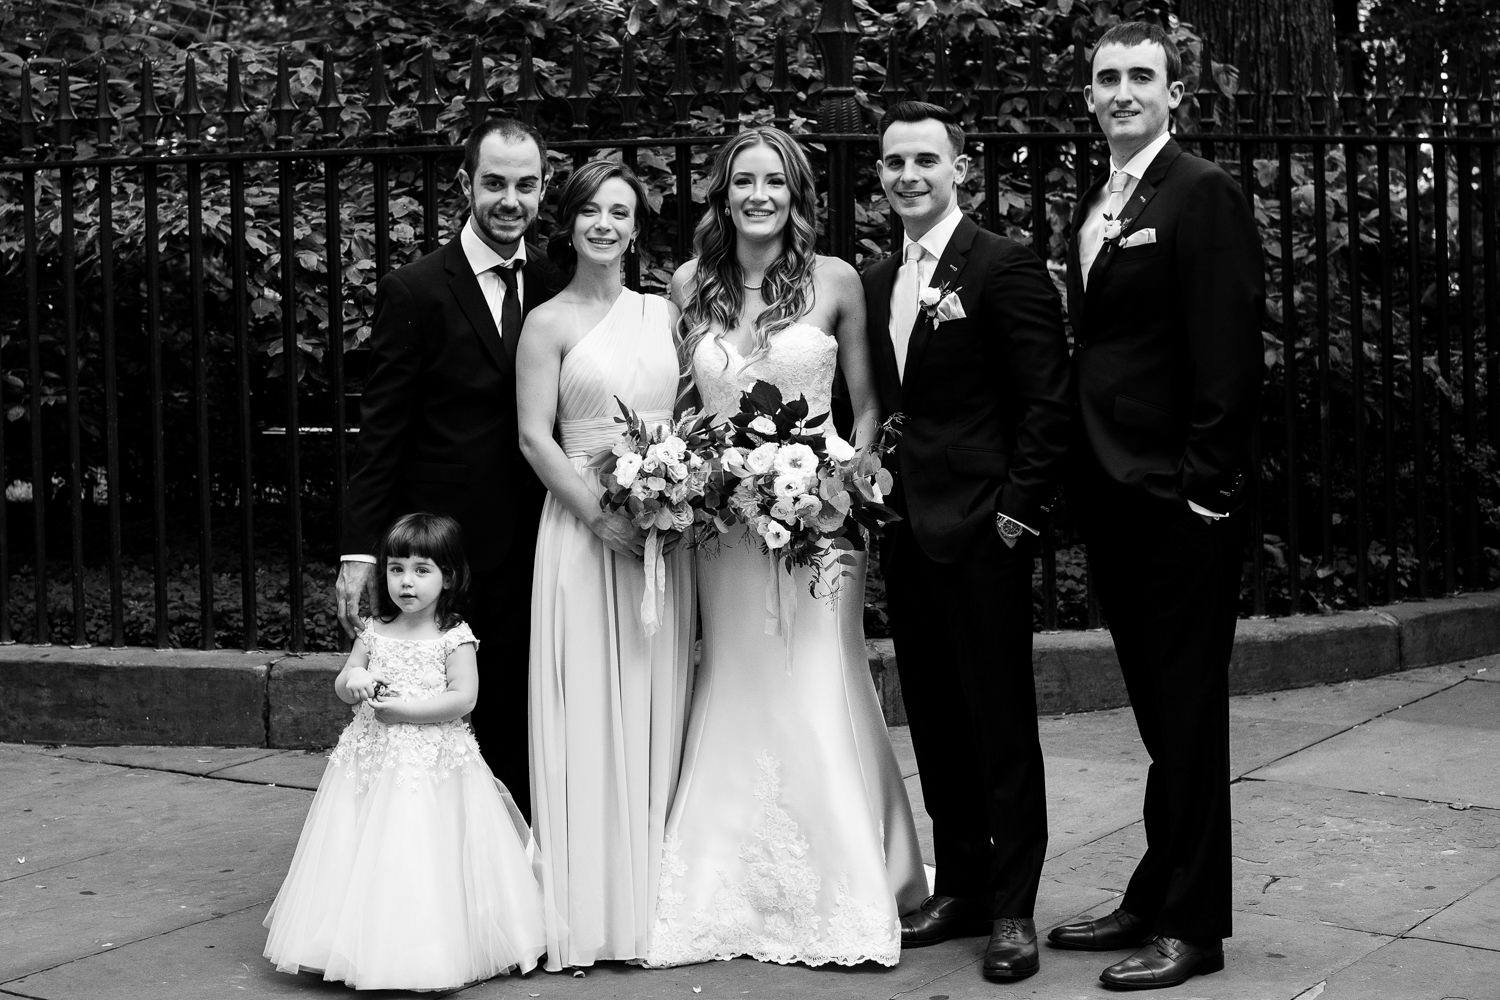 Gramercy-Park-Hotel-Wedding-New-York-Wedding-Photographer-19